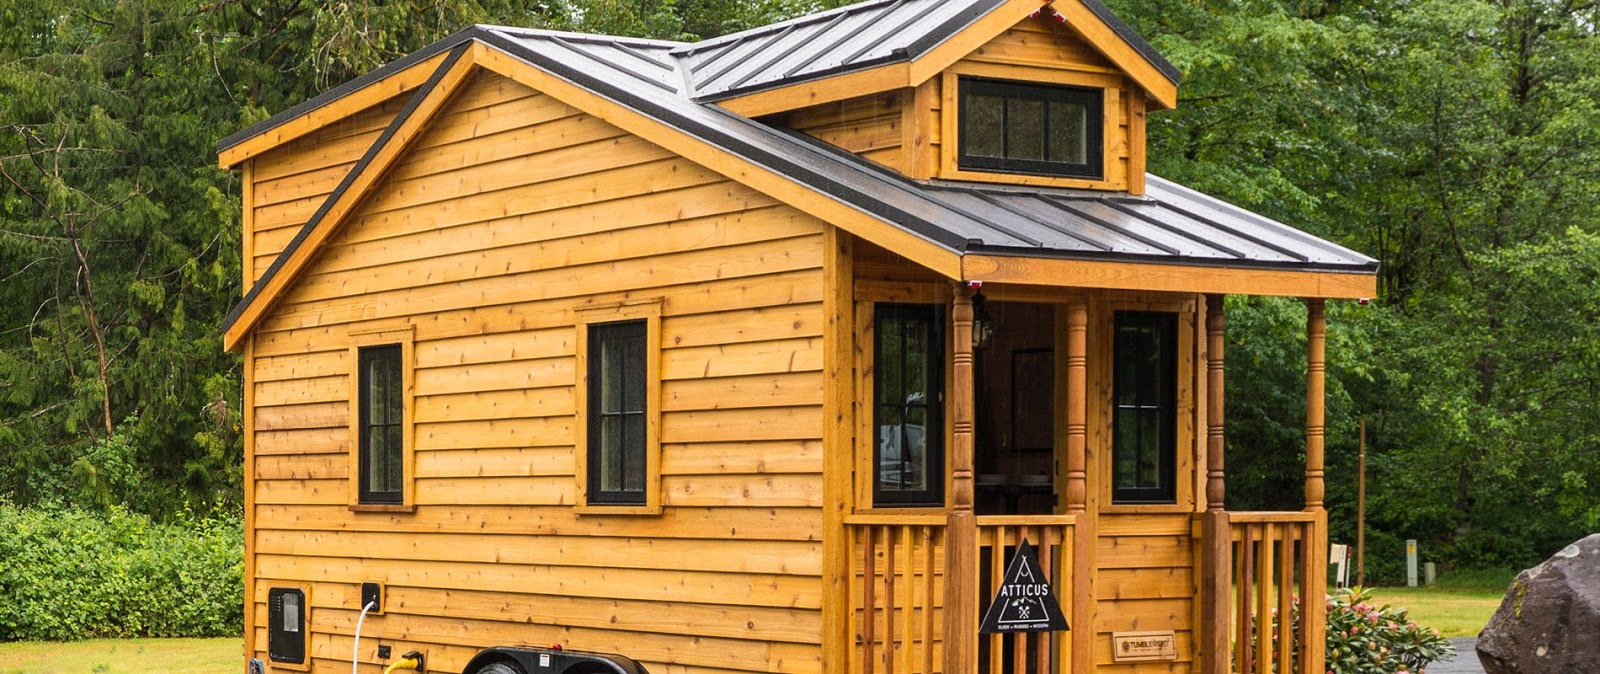 30 Built It Yourself Log Cabin Plans I Absolutely Like: Design Ideas For Small Homes